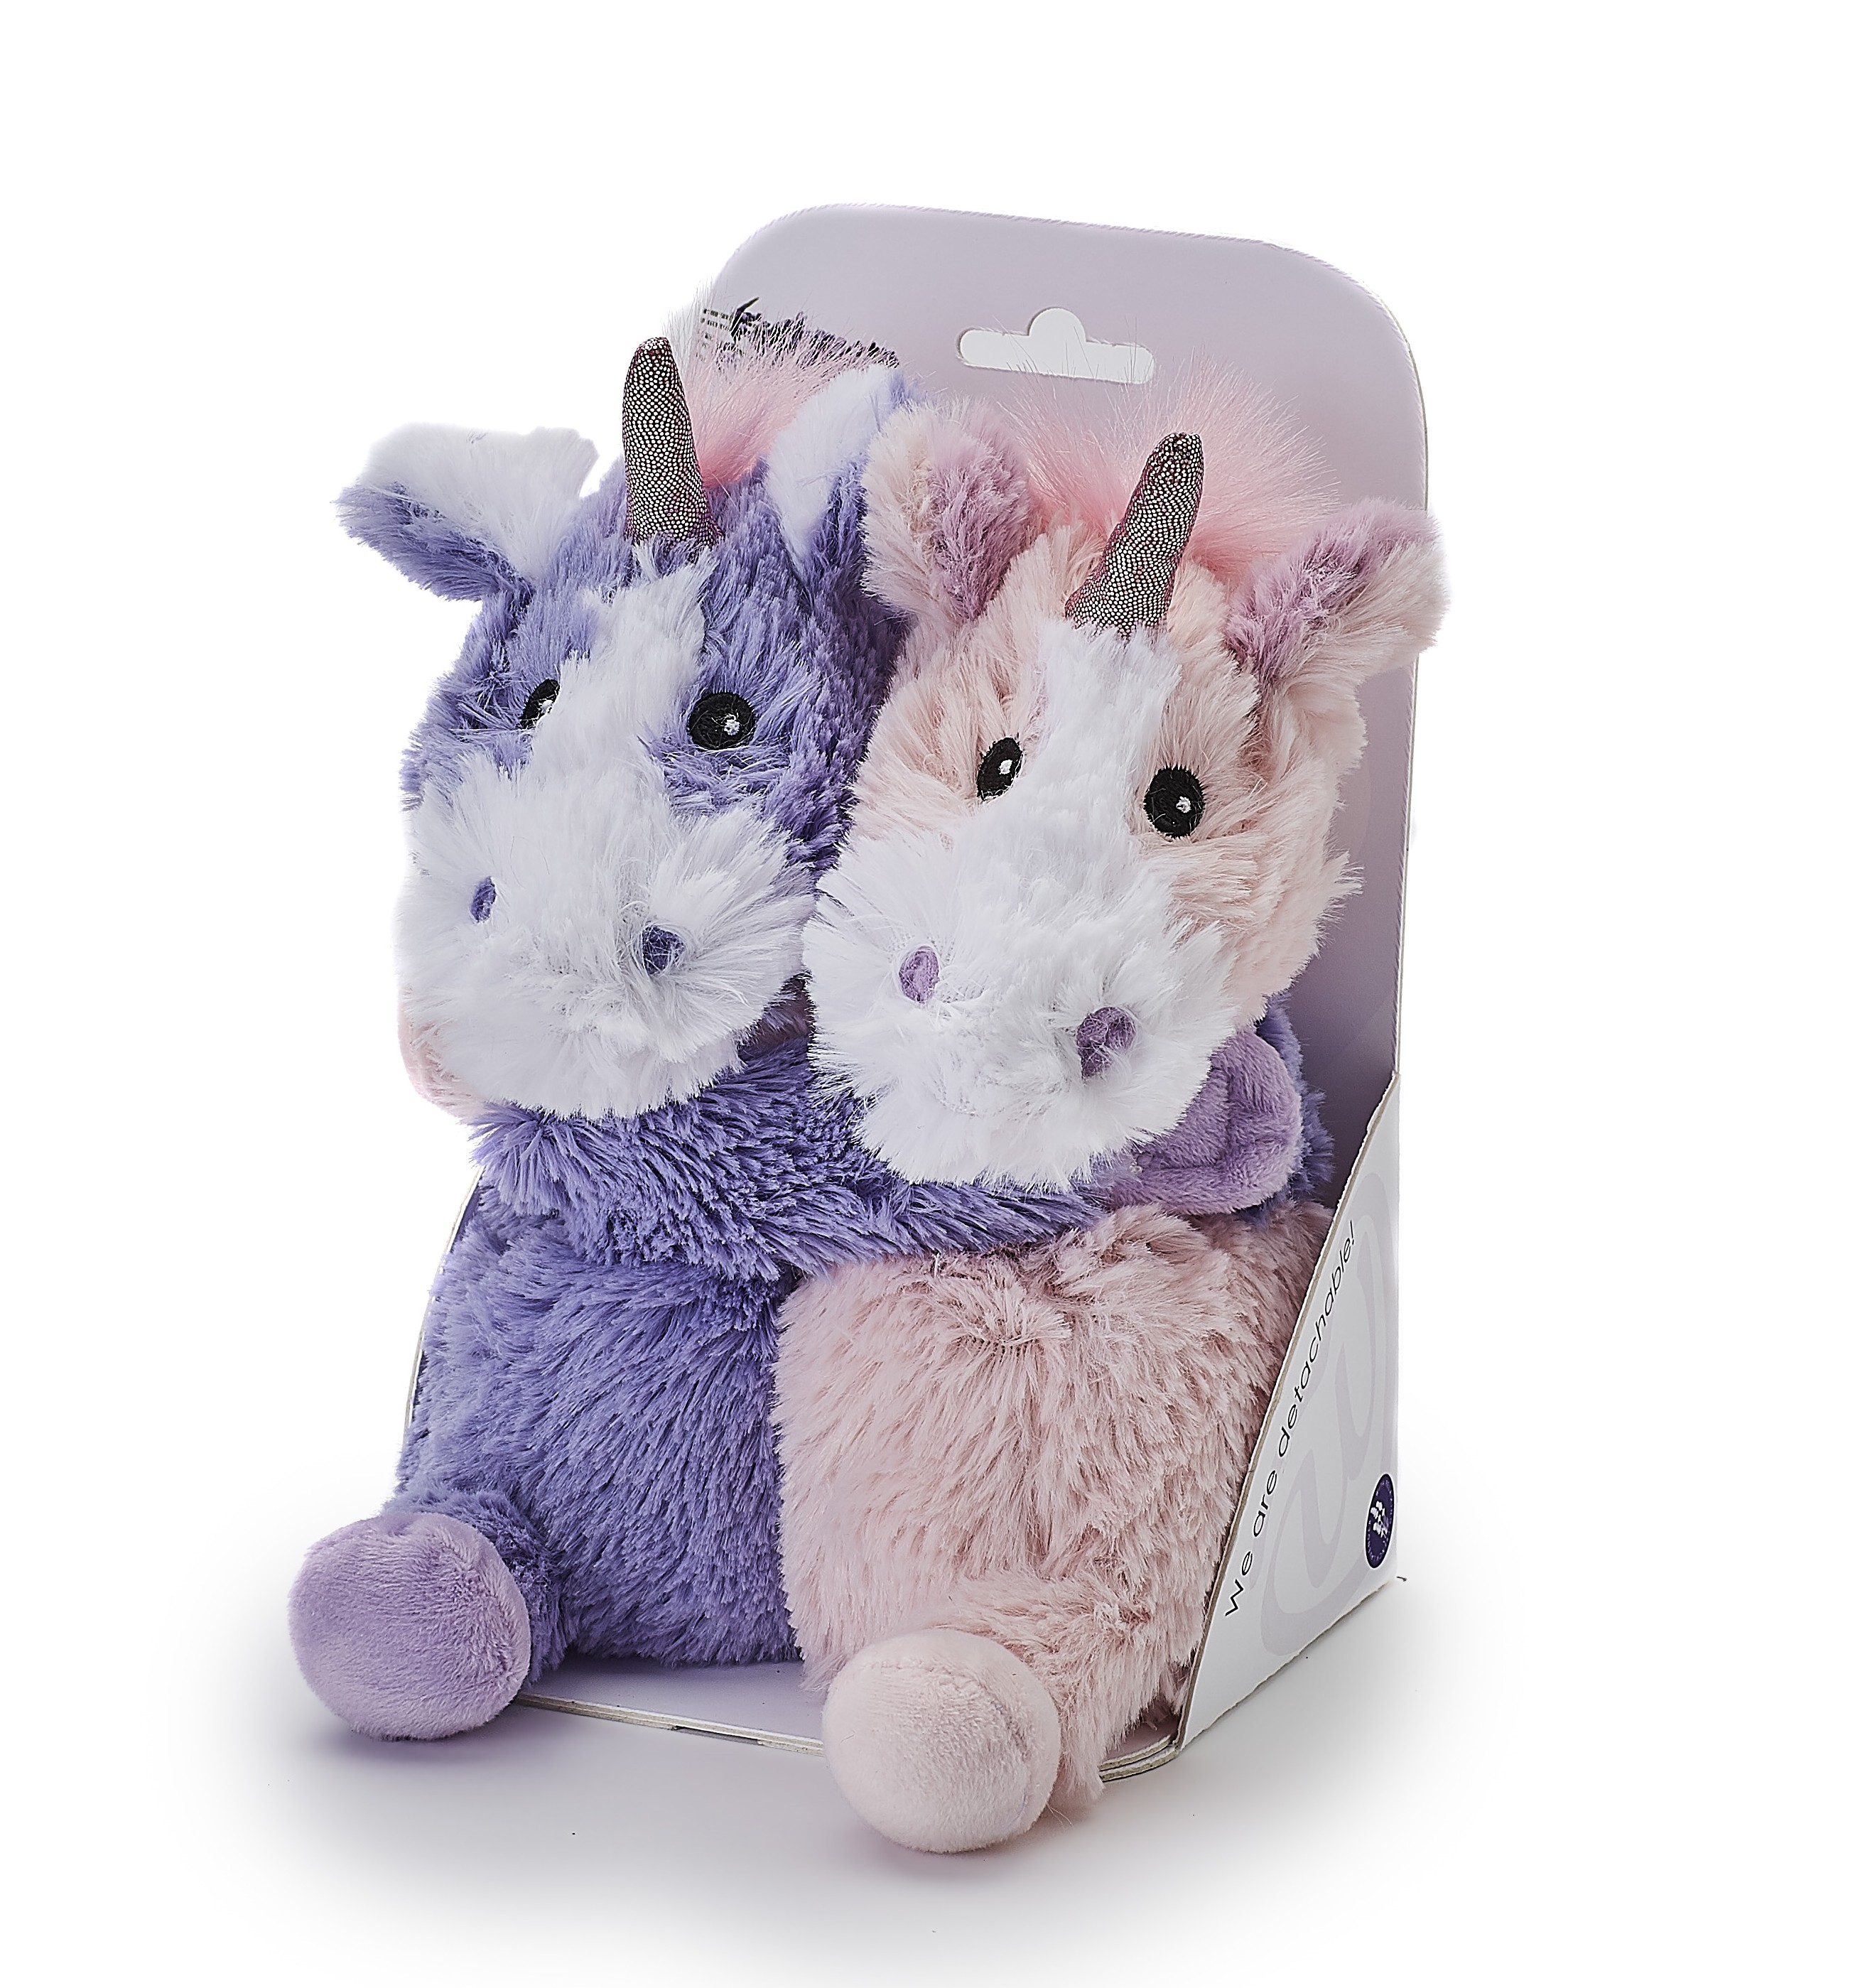 Warmies Unicorn Microwaveable Hugs Toy